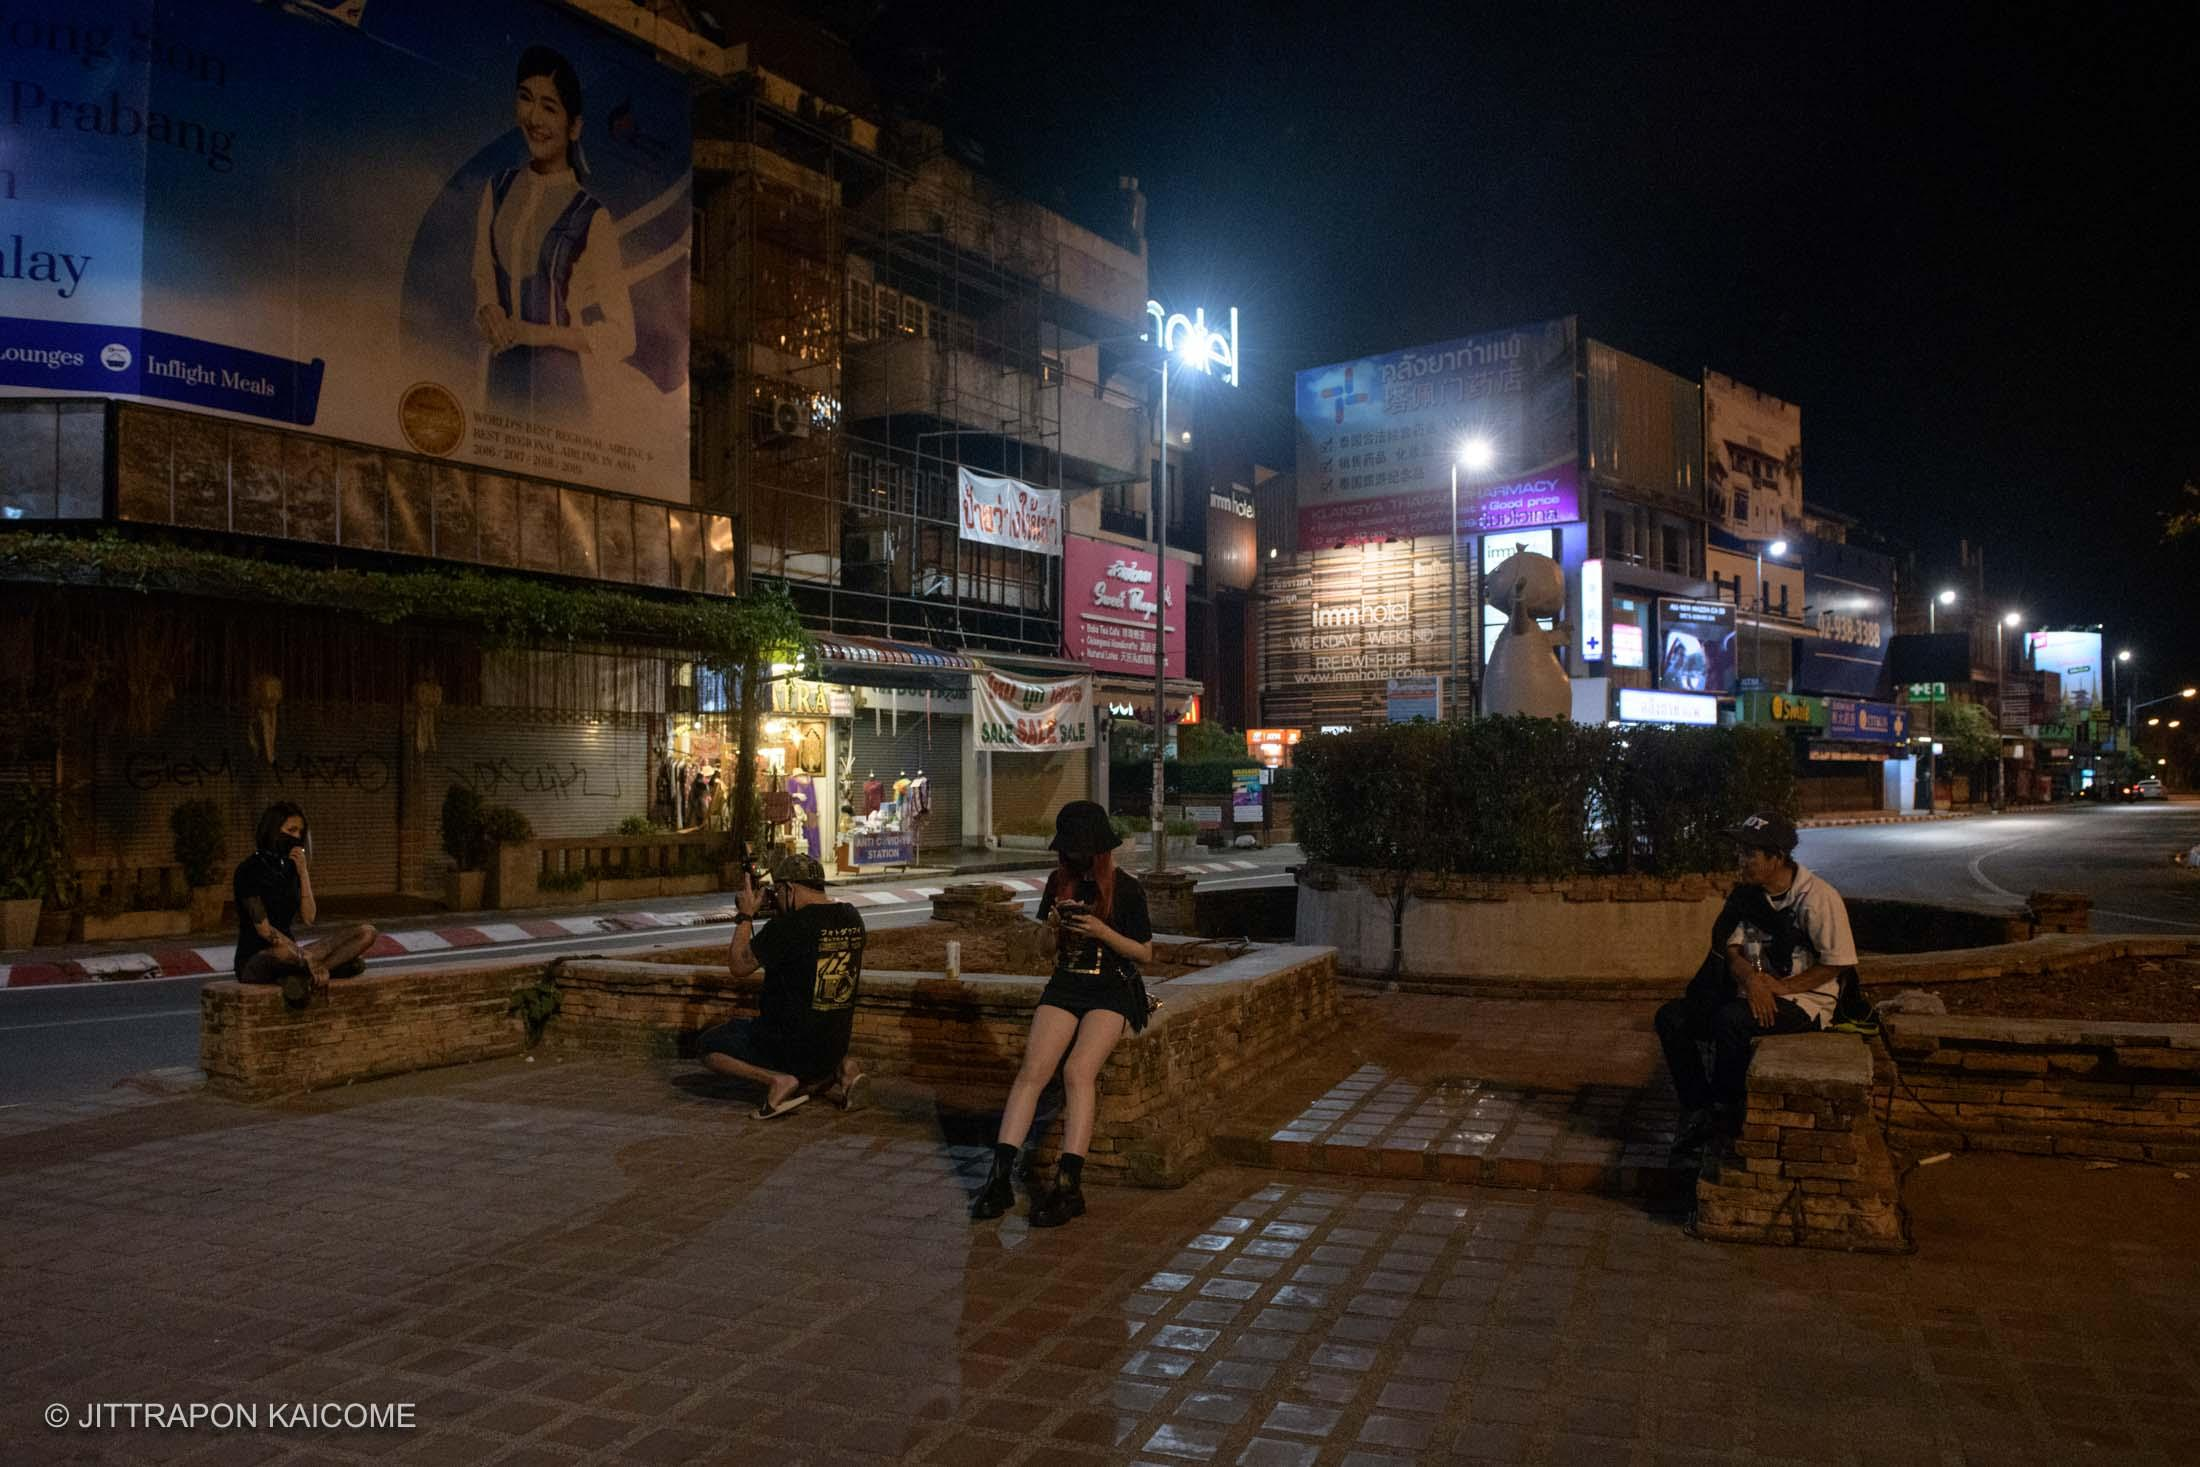 09.45 PM - Young teenagers are out for a photo shoot with the unusual scenario of the empty streets due to the Coronavirus outbreak in the are of the Chiang Mai old town. Chiang Mai, Thailand in March 24, 2020.